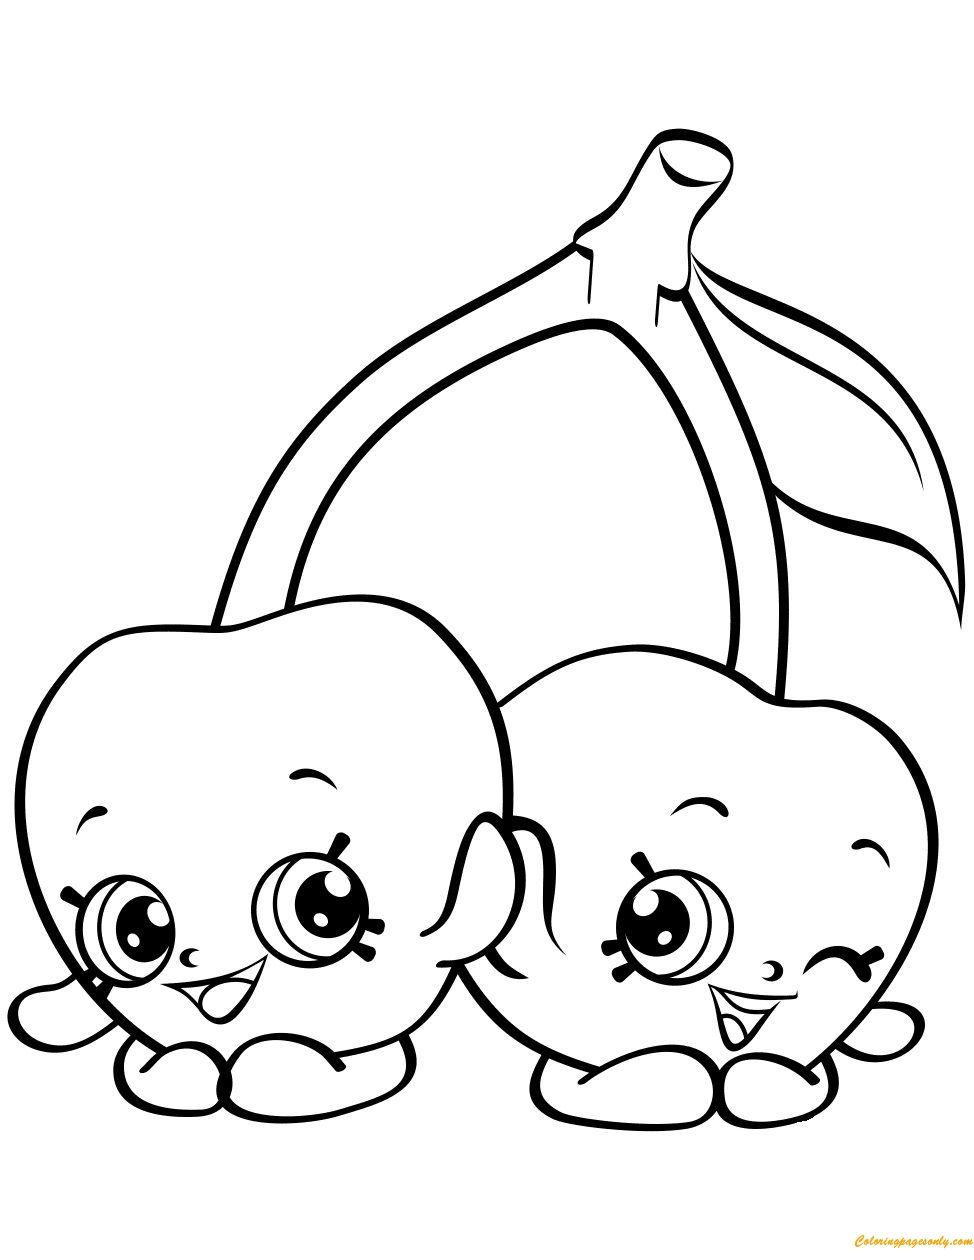 Shopkins Free Coloring Pages 4 G Cheeky Cherries Shopkin Season 4 Coloring Page Free Colo Shopkin Coloring Pages Cartoon Coloring Pages Shopkins Colouring Book